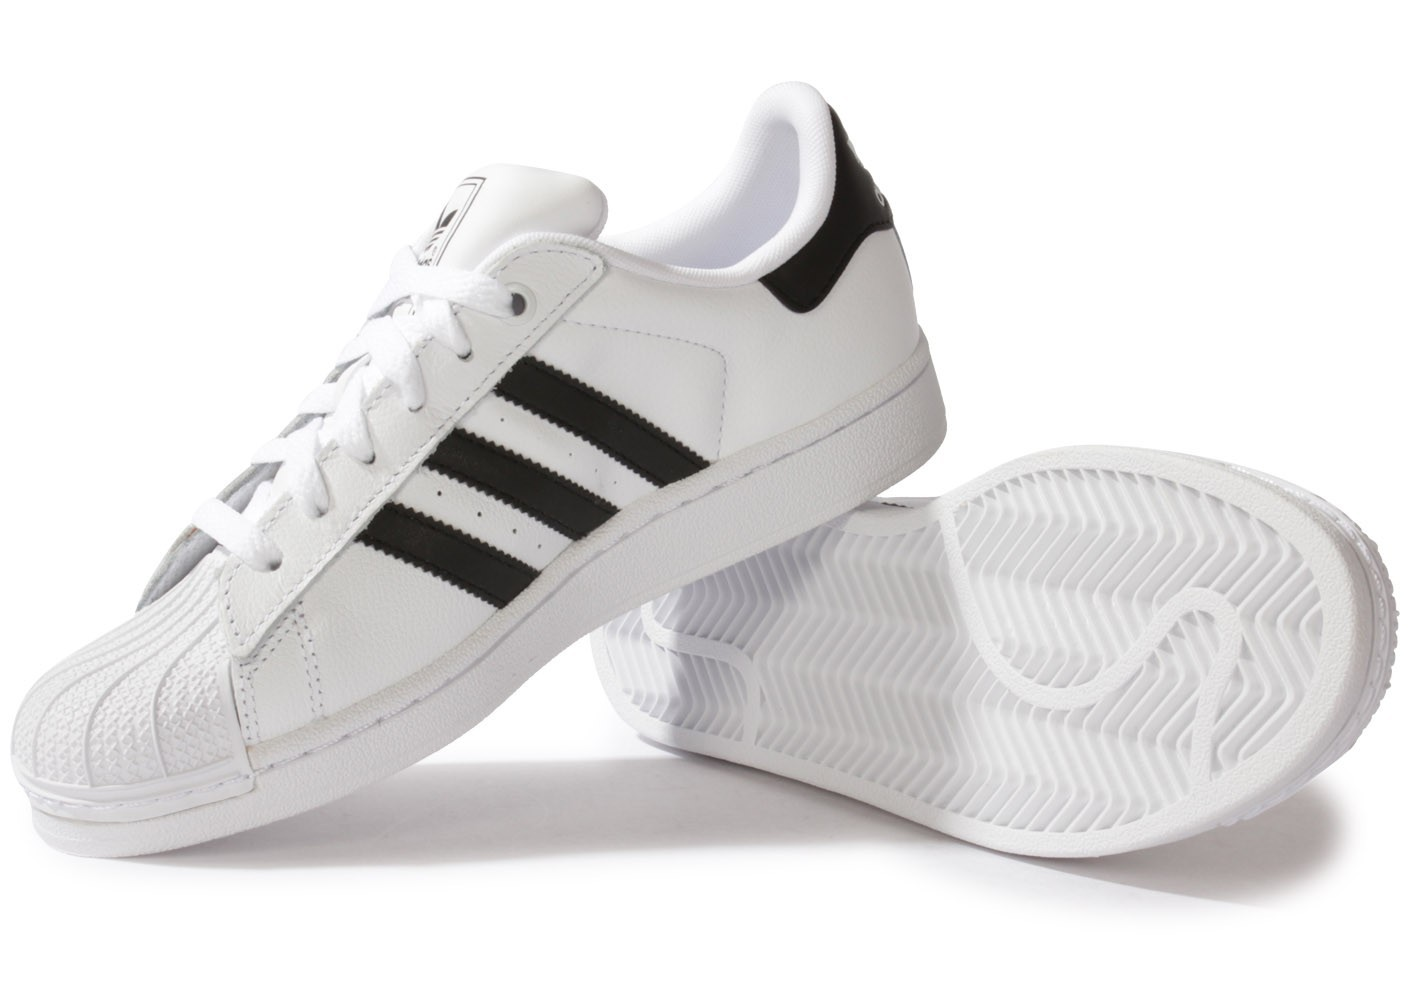 pas mal 50ae3 14ccf Soldes Chaussures adidas superstar femme Pas Cher,Achat ...